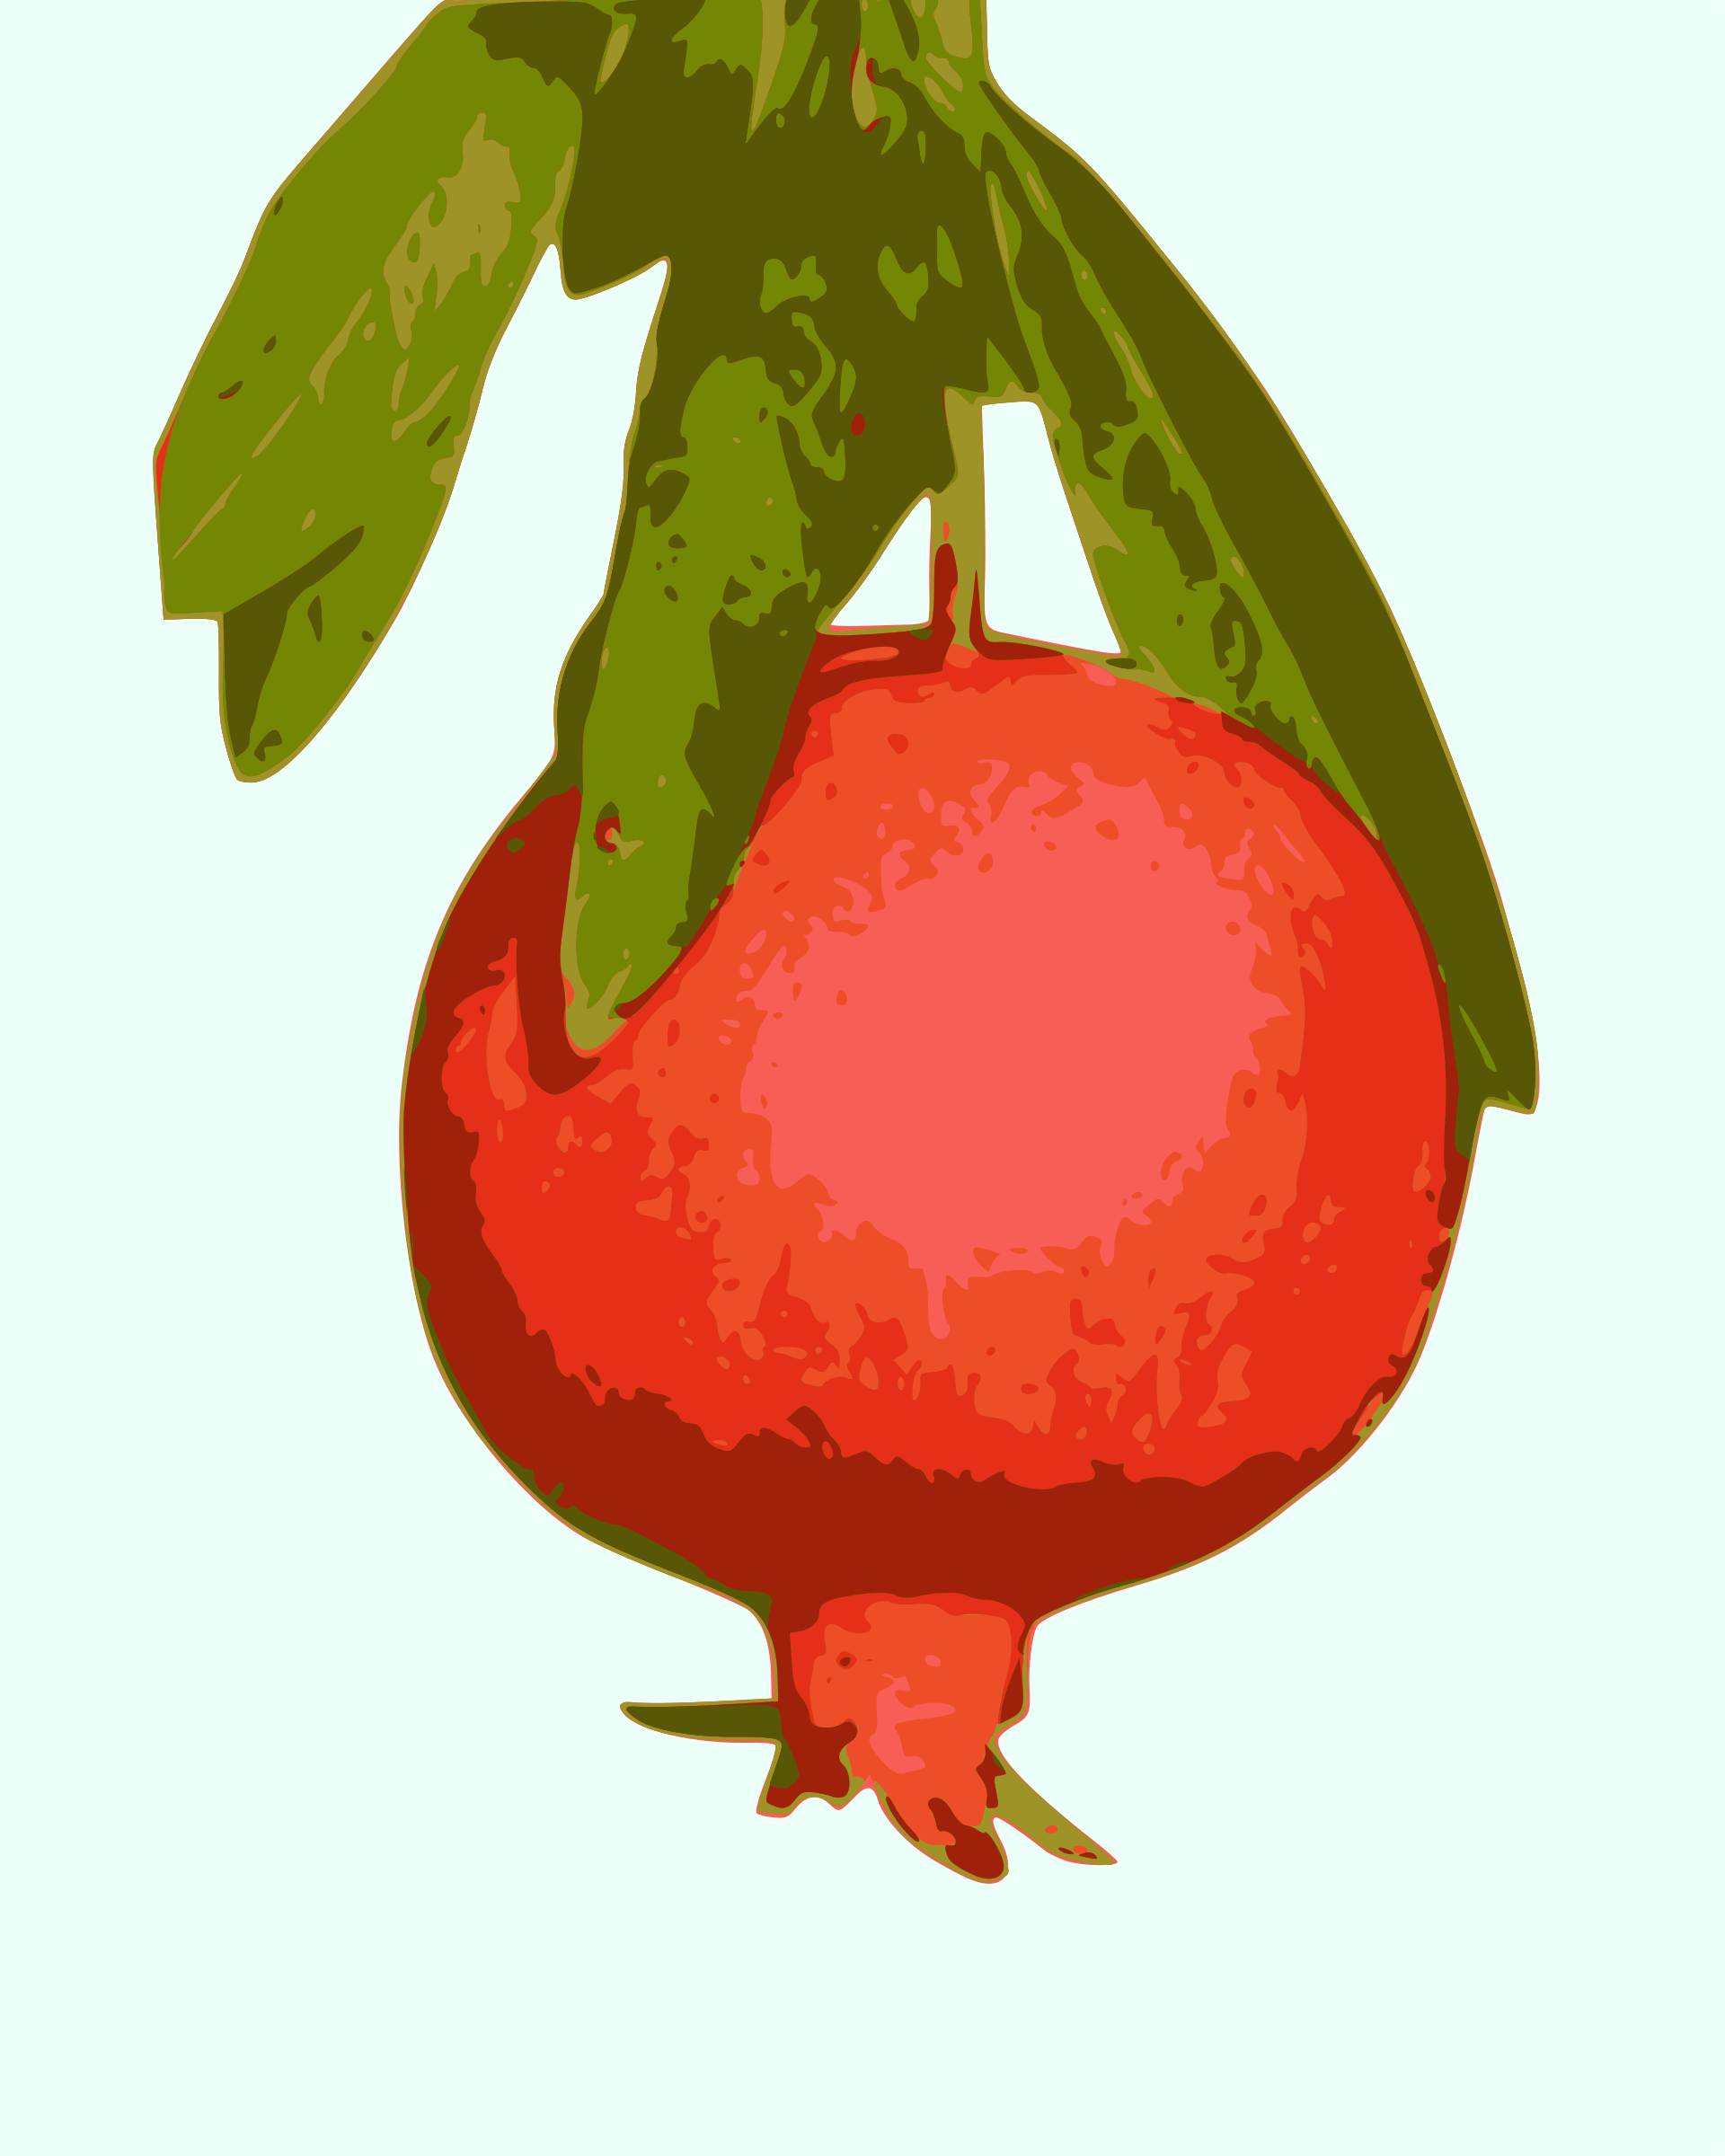 Big image png. Pomegranate clipart pomegranite